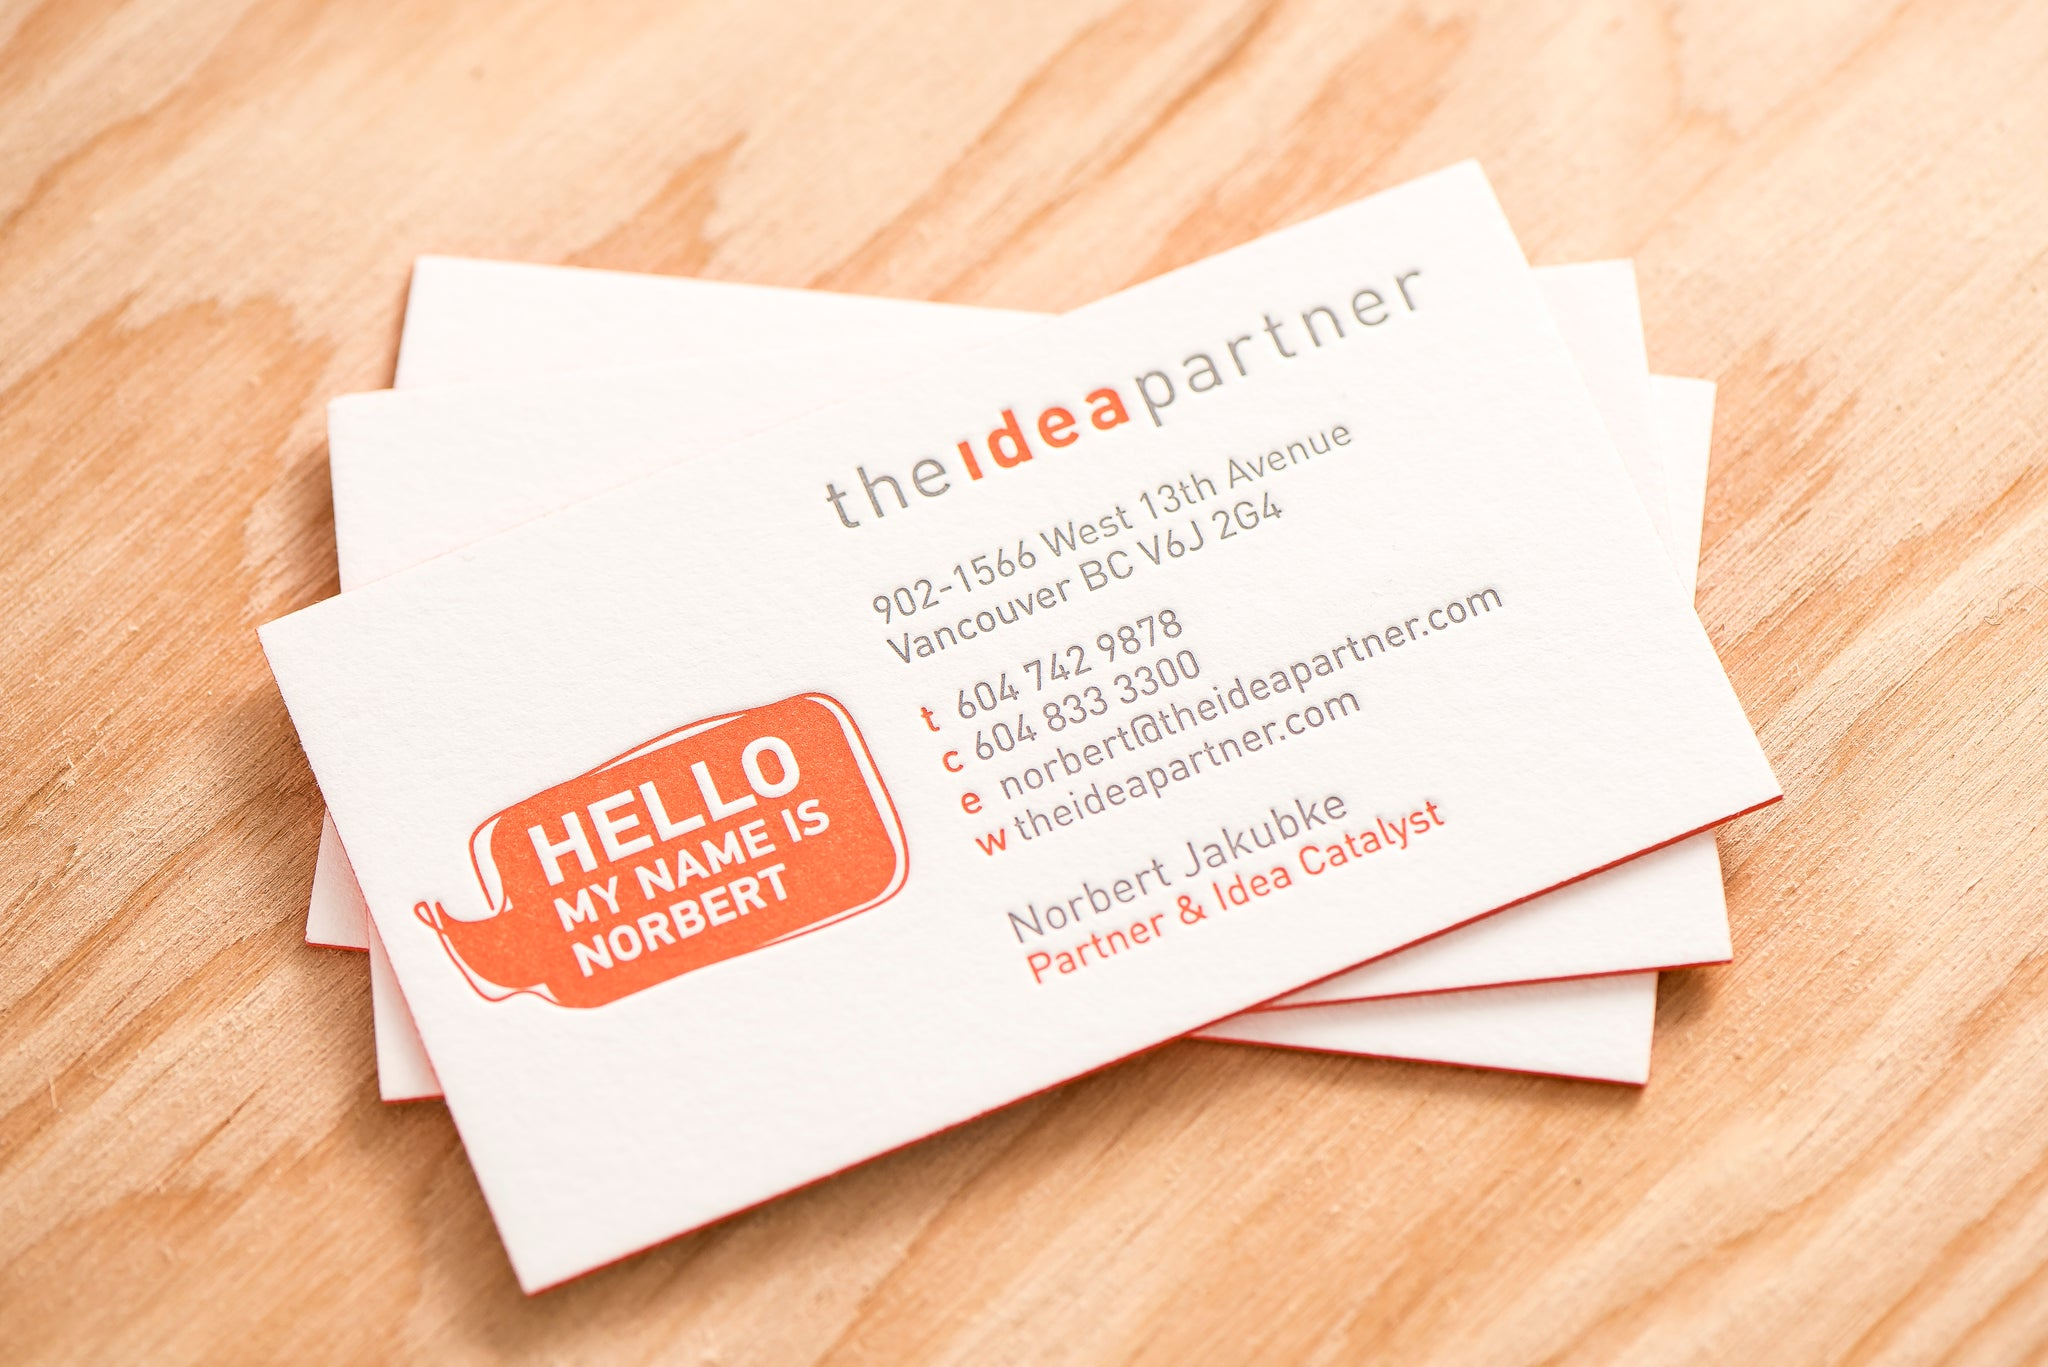 Portfolio business cards the idea partner porchlight press ltd porchlight press the idea partner letterpress business card reheart Gallery